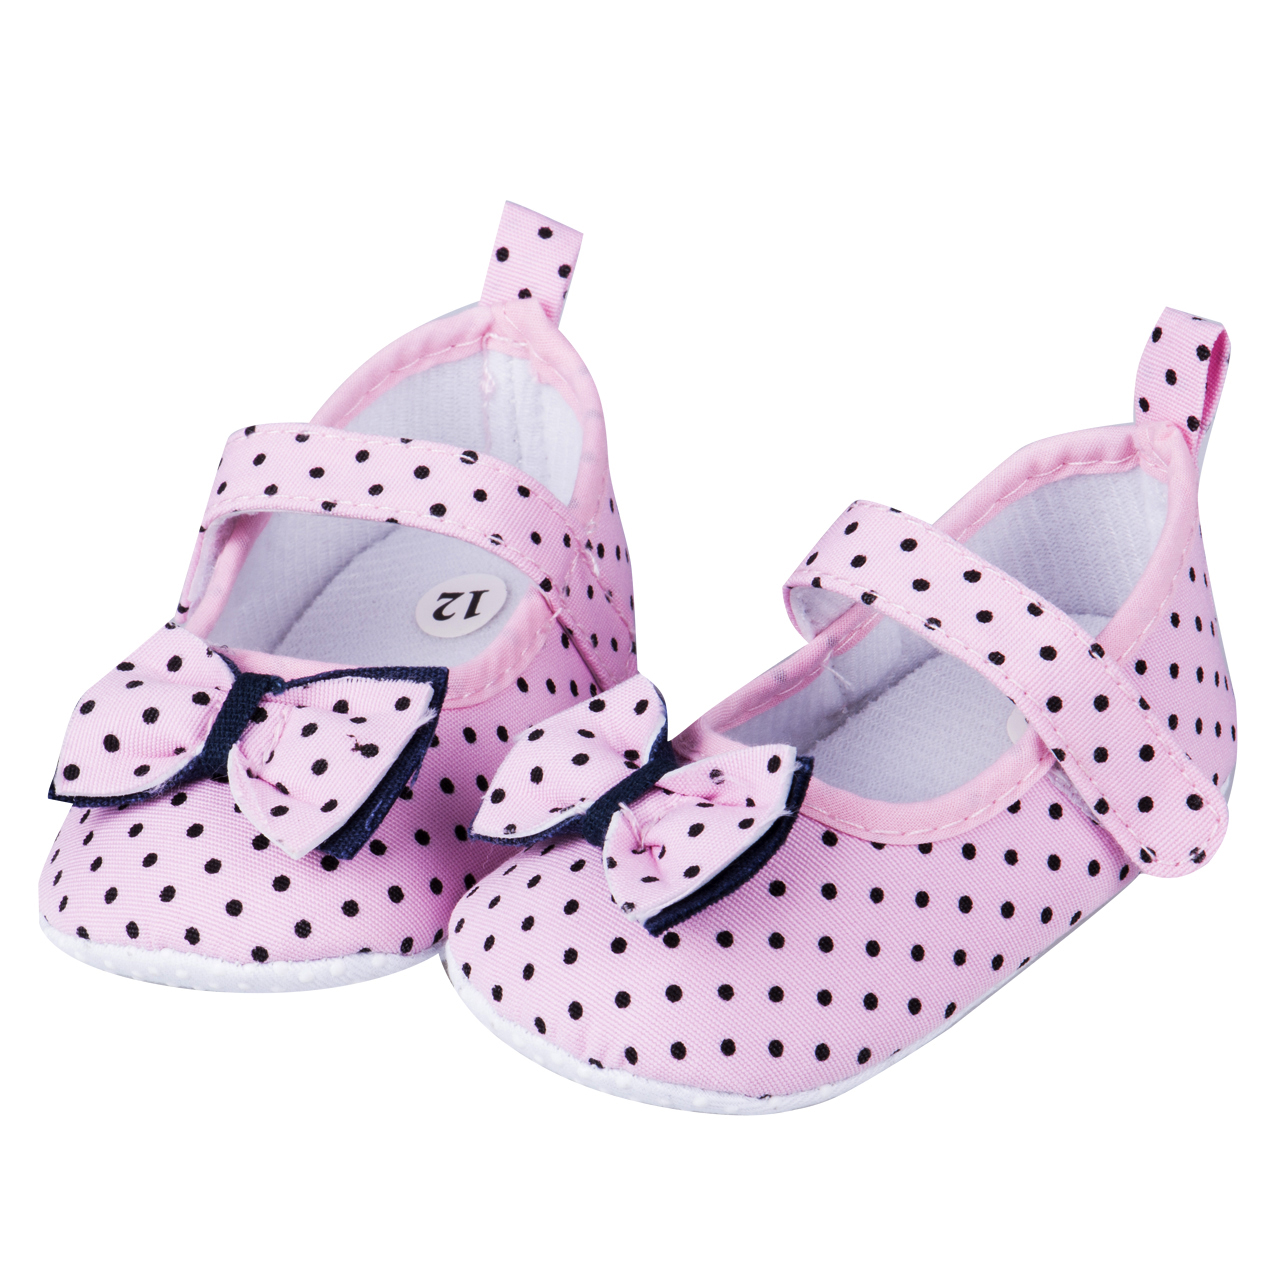 Baby Shoes Conscientious Pudcoco Summer Toddler Infant Newborn Kids Baby Girl Anti-slip Sole Crib Shoe Sneaker First Walker For 3-12m Delicious In Taste